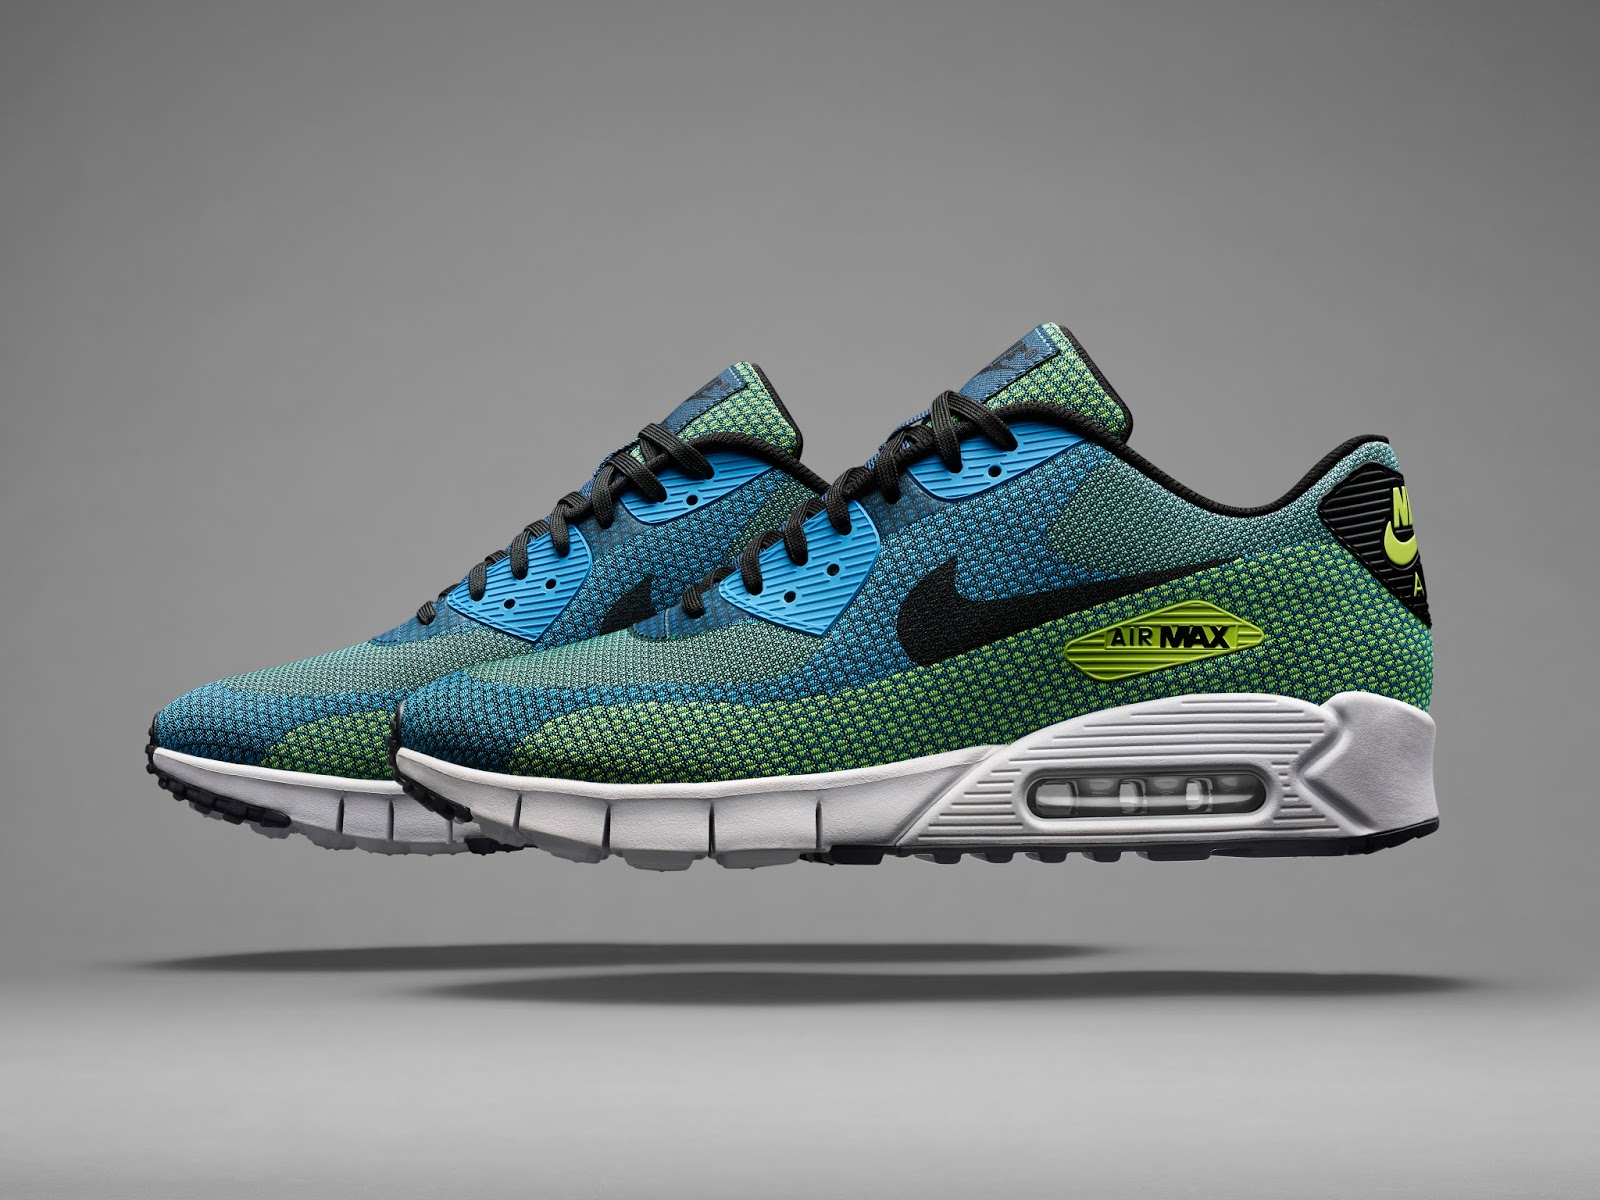 sneakers air max lunar 90 jacquard acid